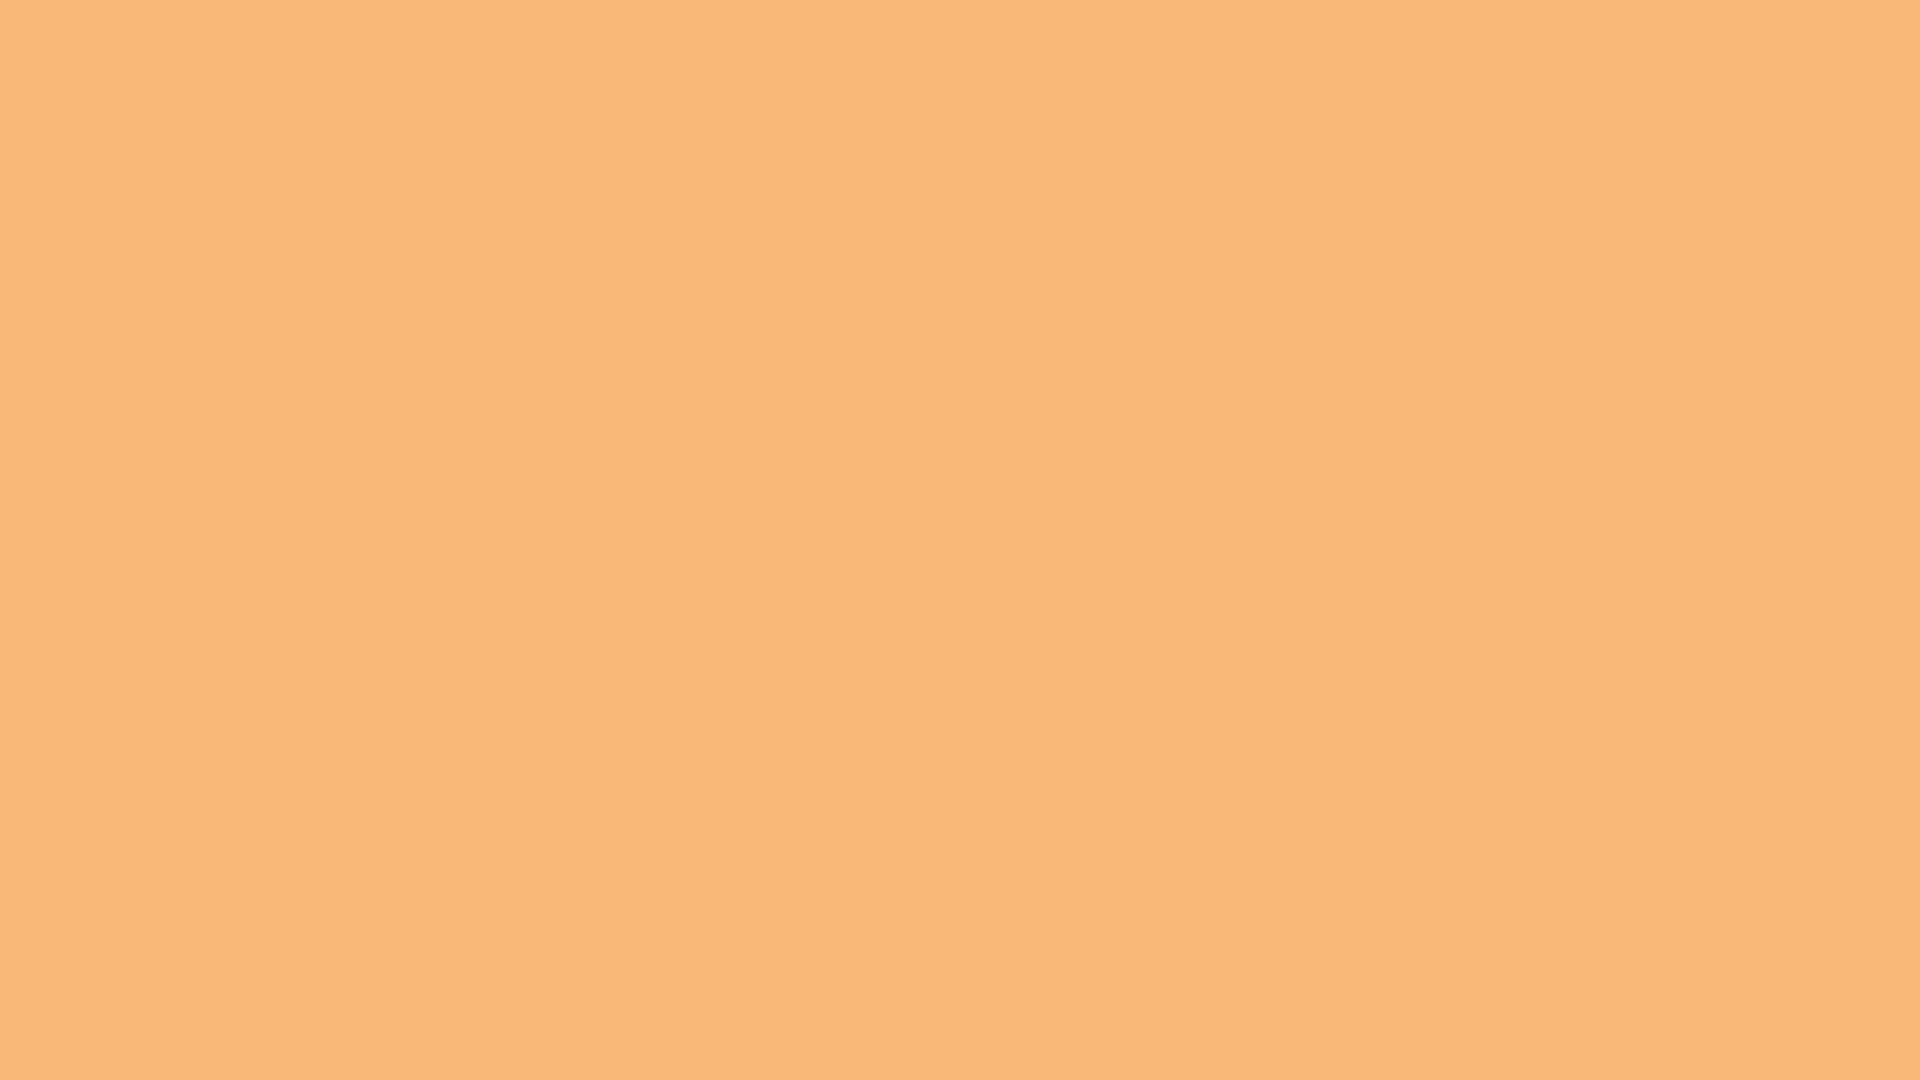 1920x1080 Mellow Apricot Solid Color Background